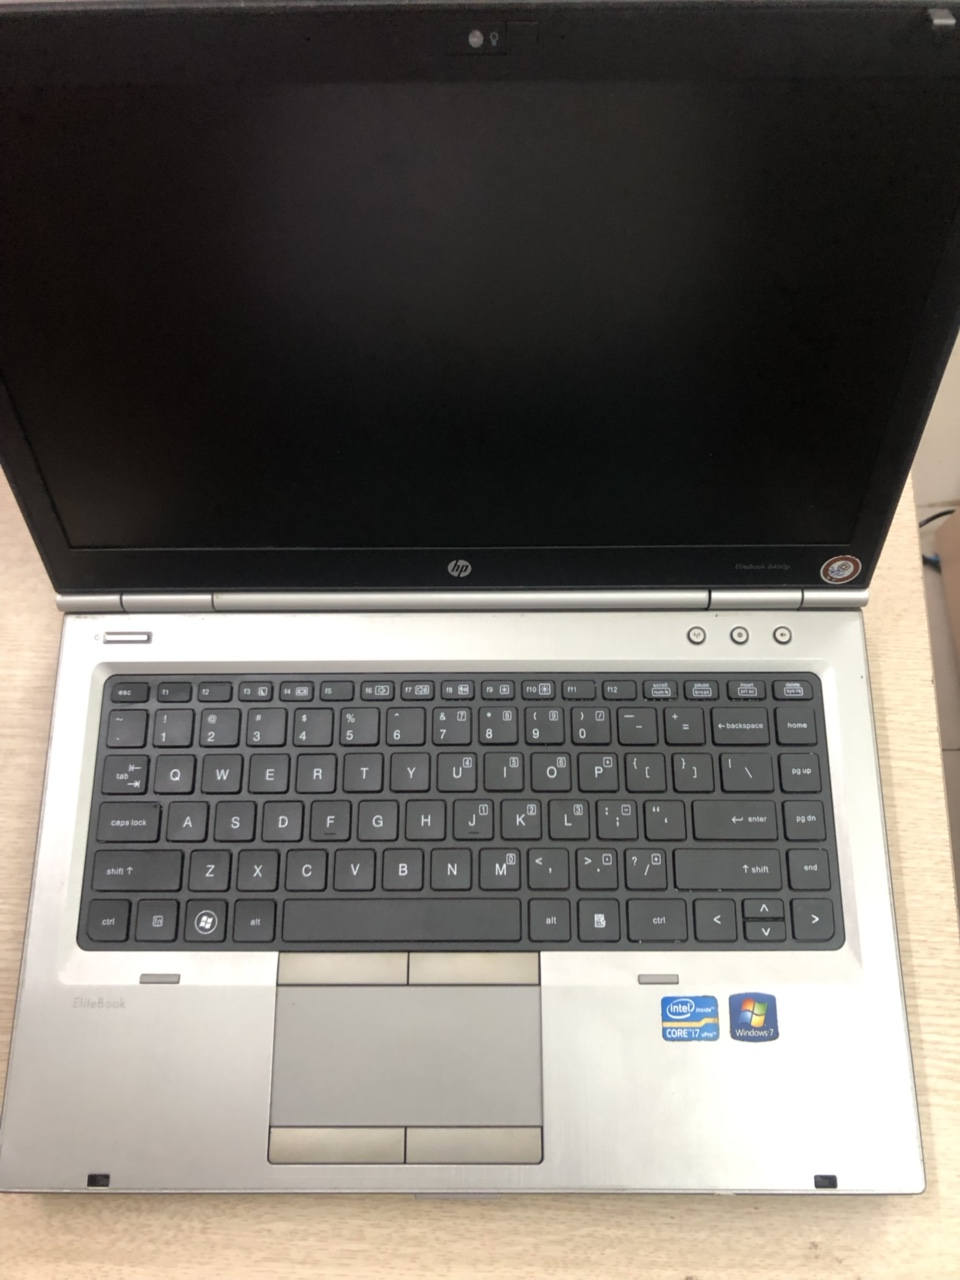 HP Elitebook 8460p I5/2520M/4G/320G